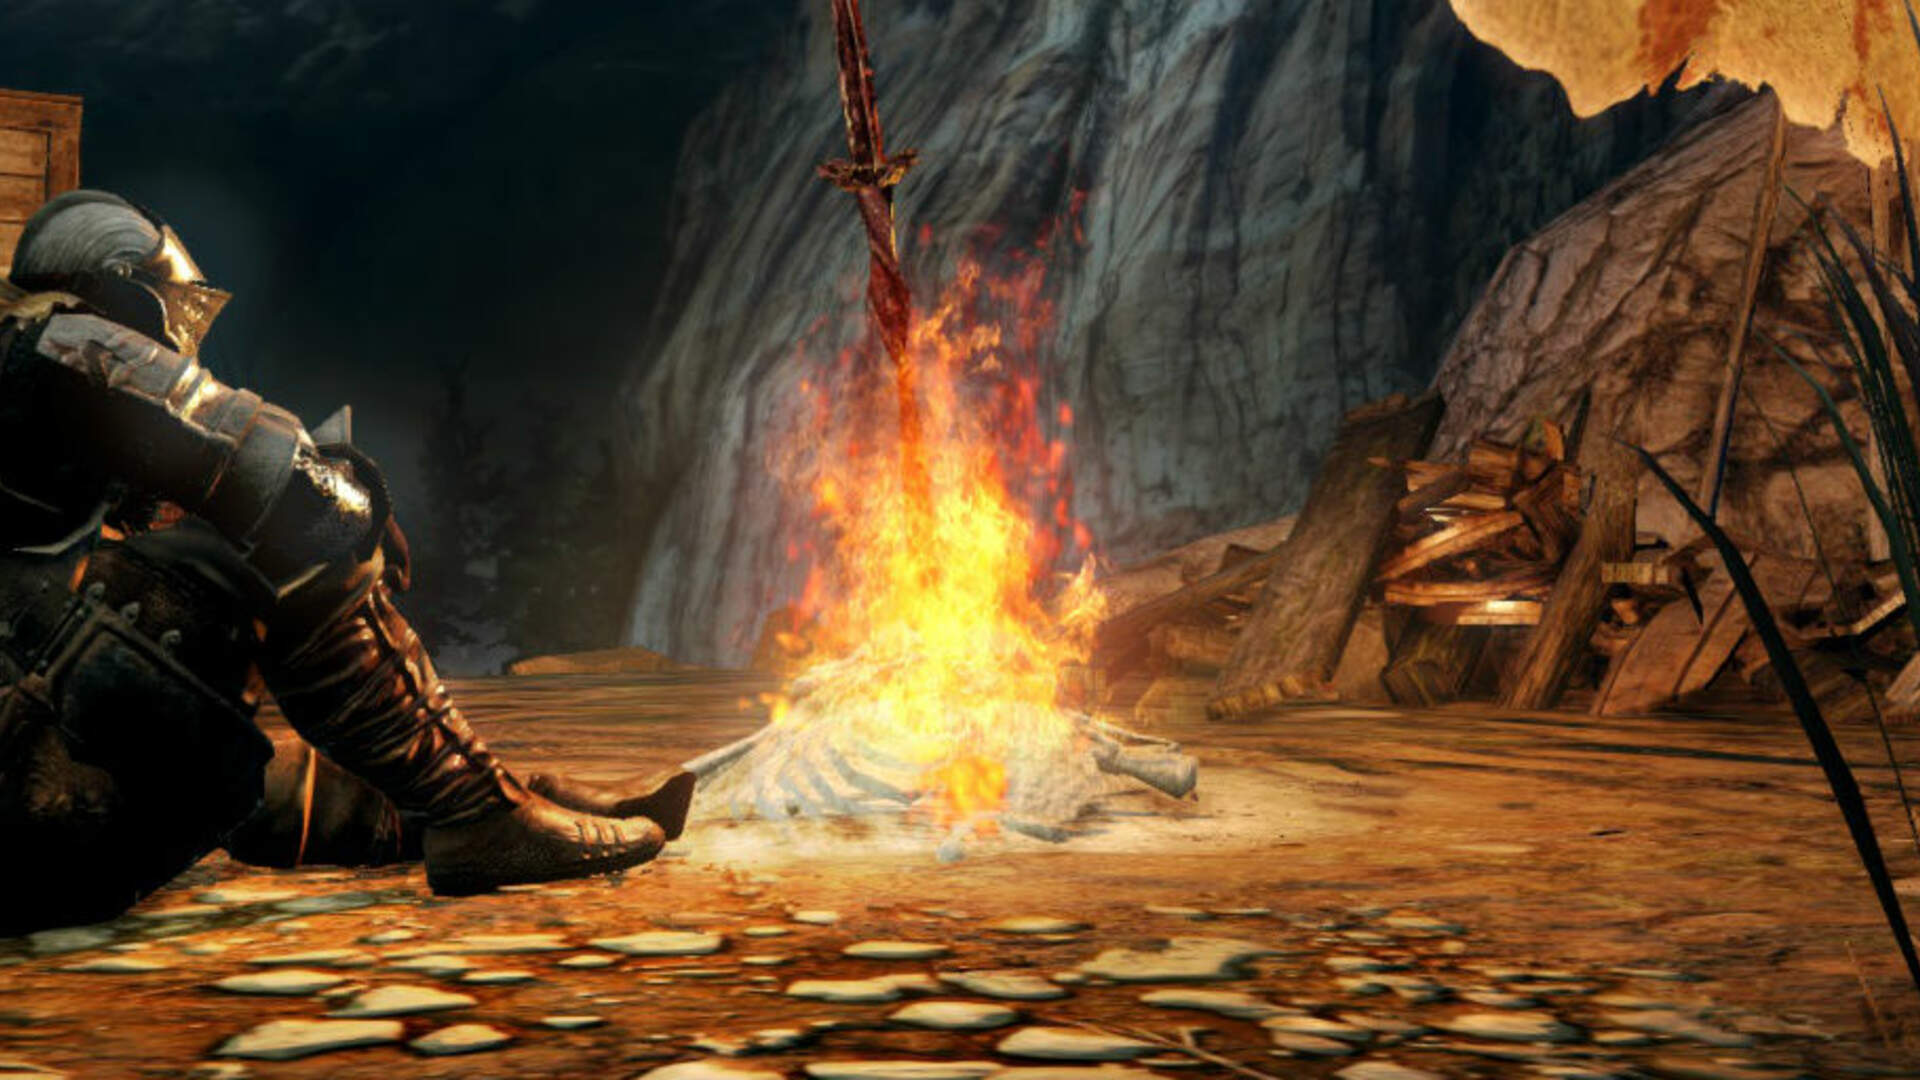 Dark Souls 2 Guide: How to Defeat the Looking Glass Knight in the King's Passage